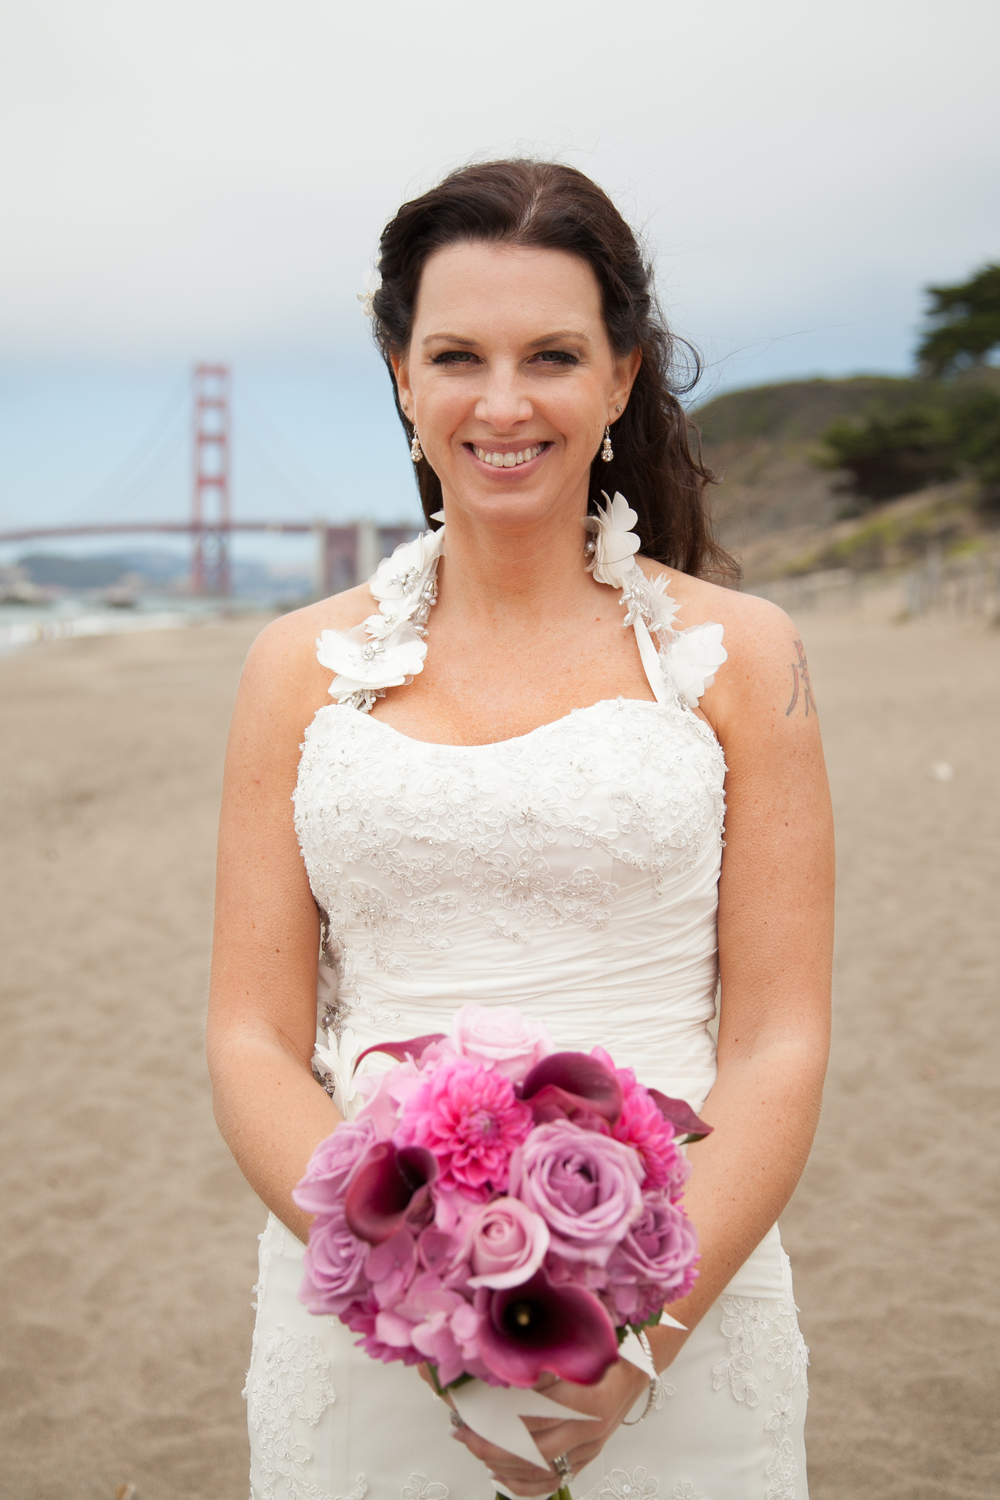 Baker Beach Elopement in San Francisco-Meo Baaklini062.jpg